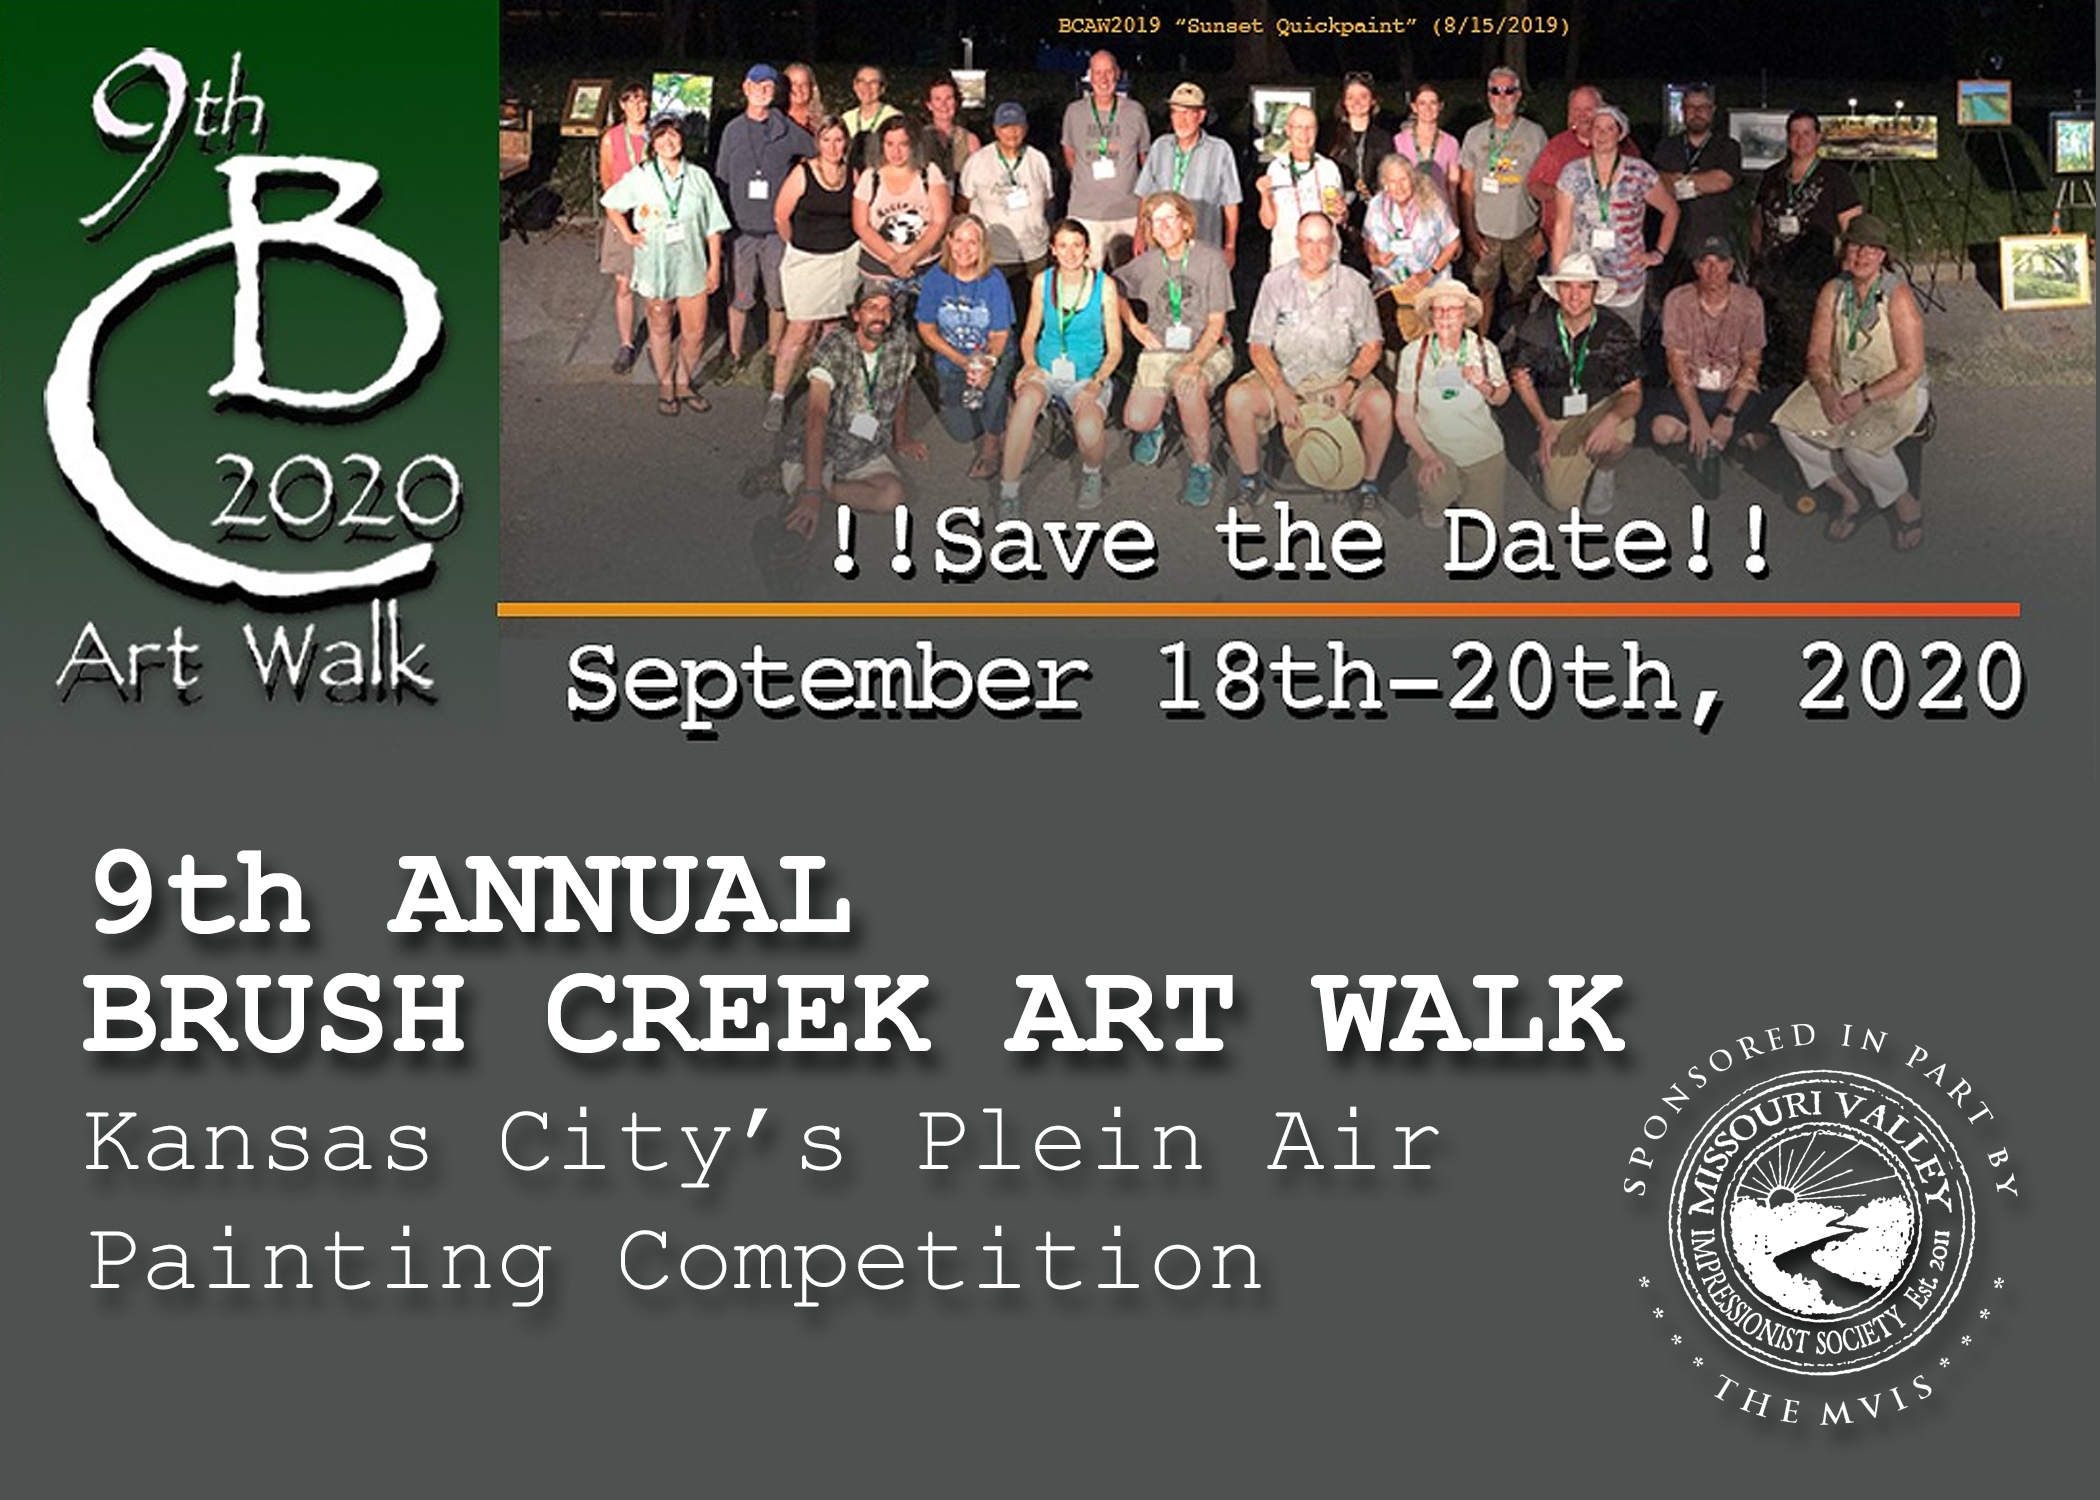 Brush Creek Art Walk